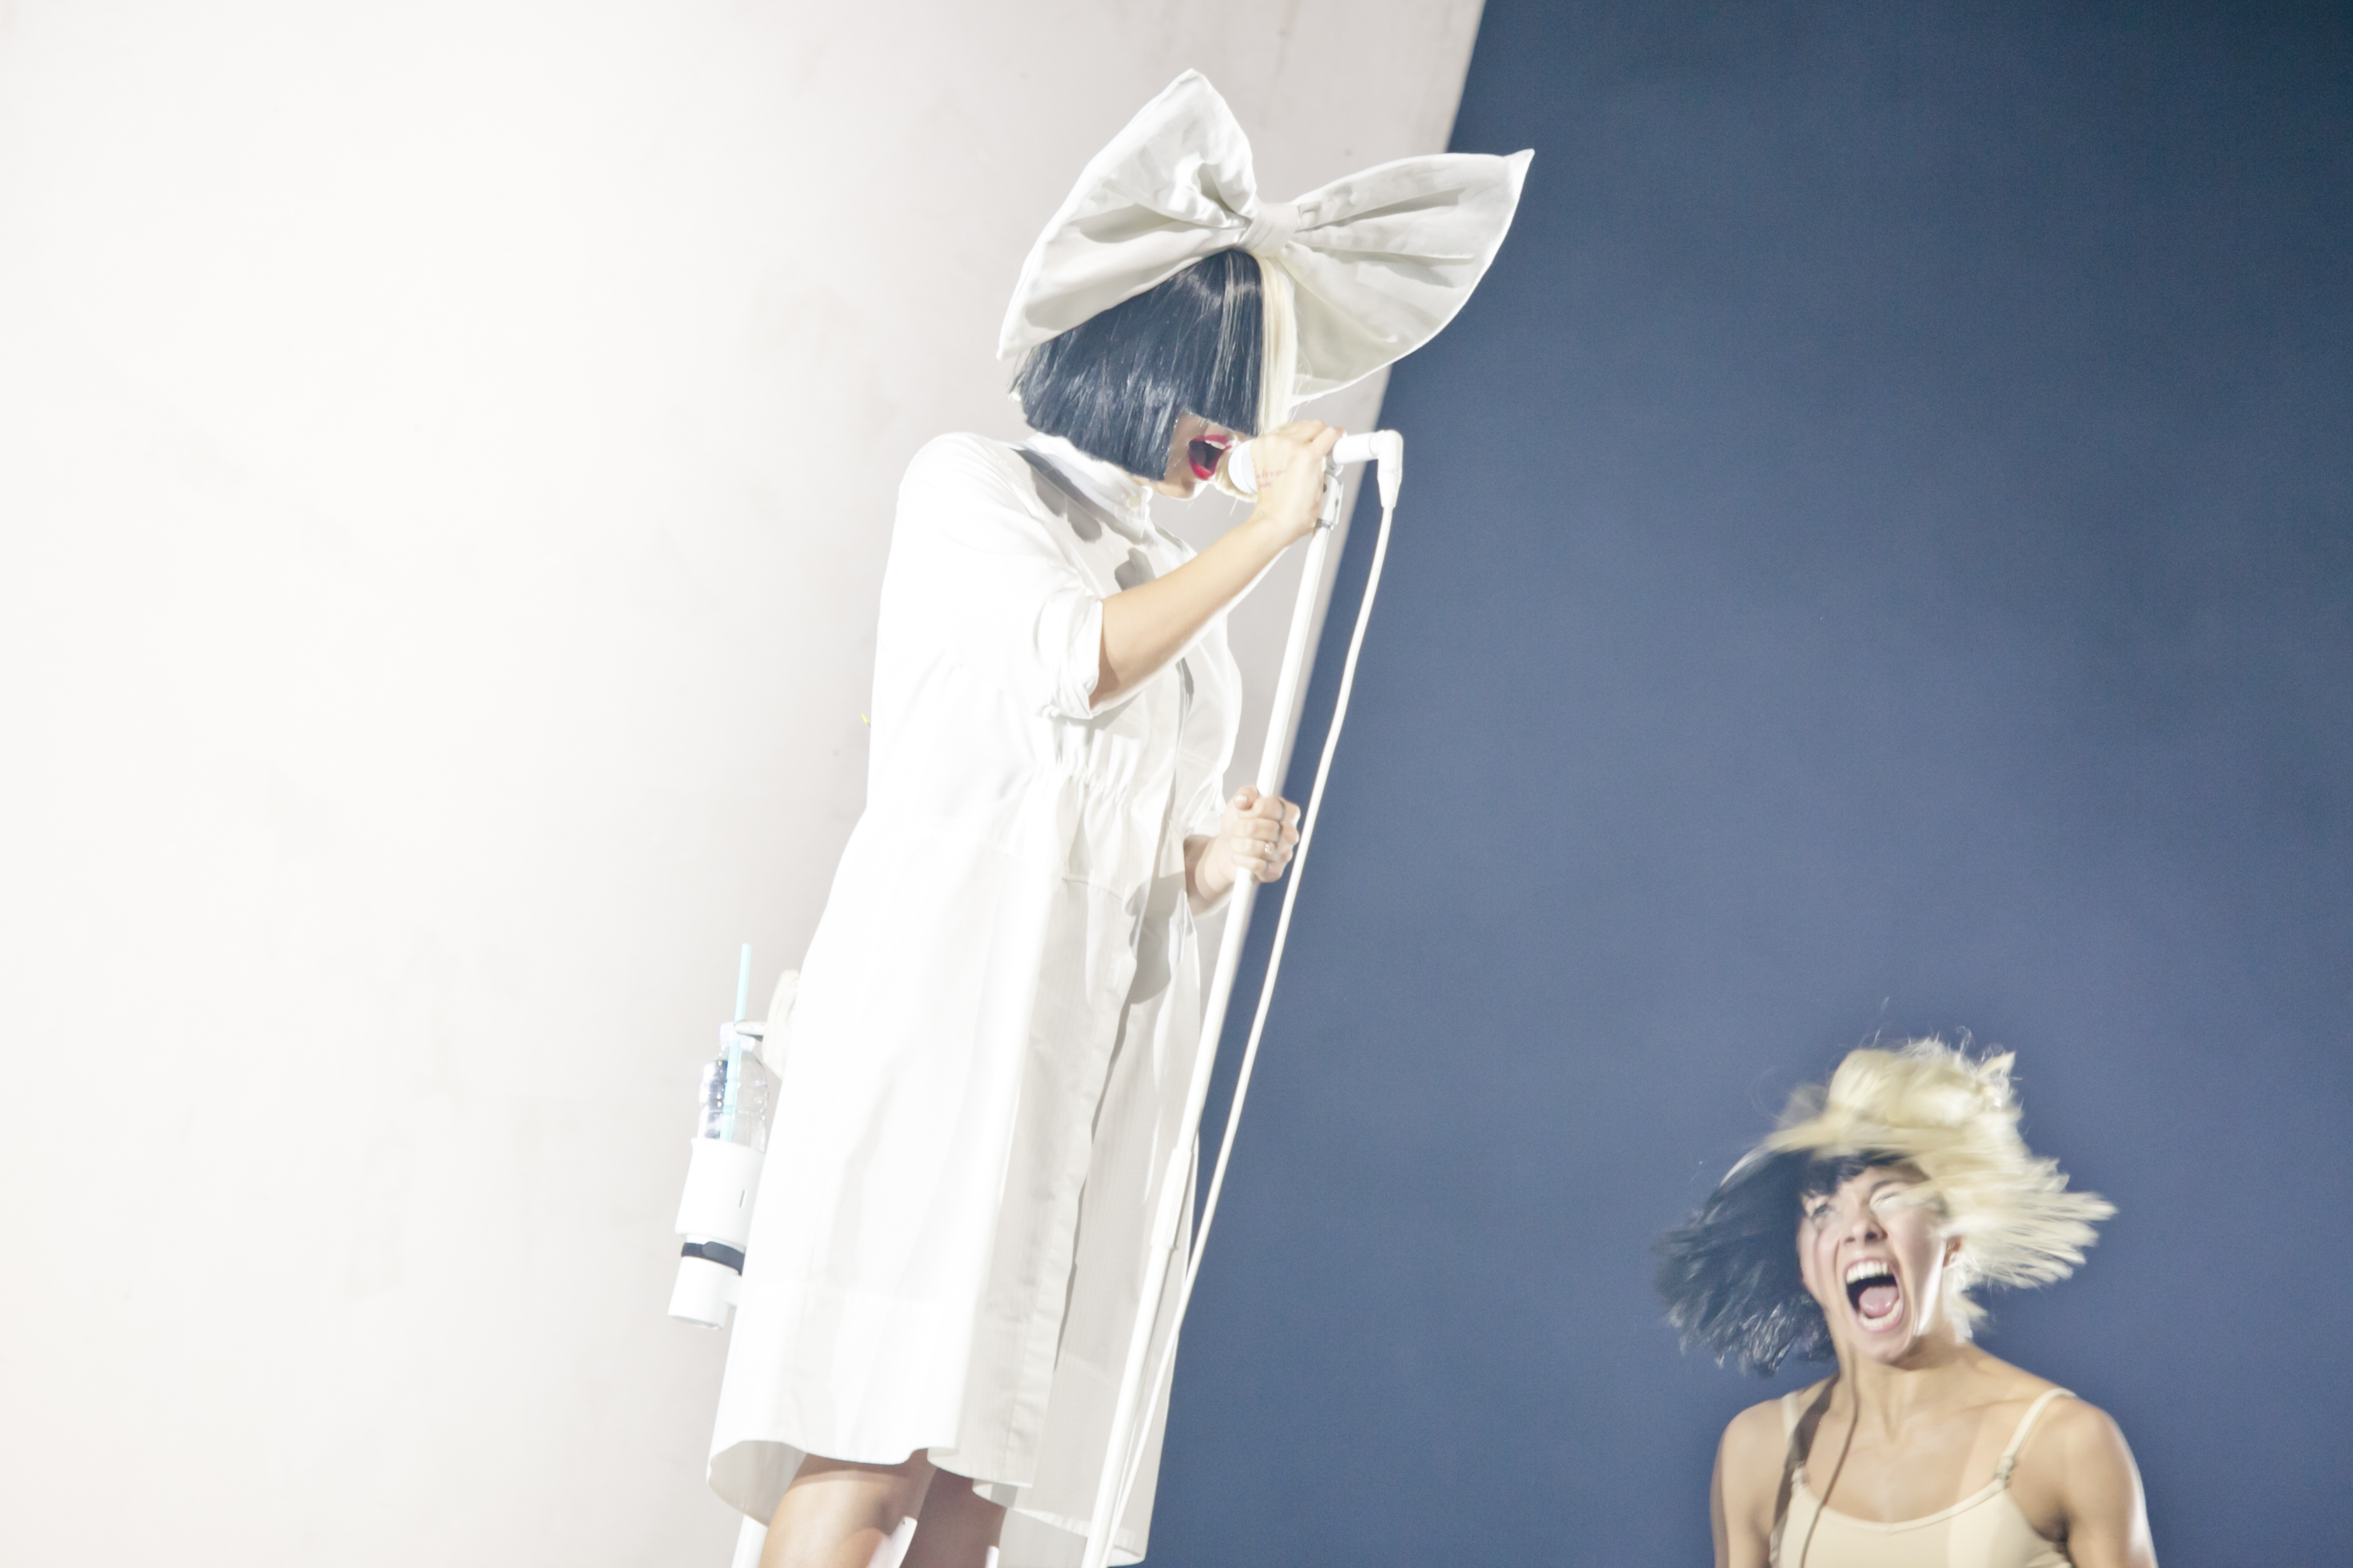 SIA at Sziget Festival, Budapest, Hungary - 15 August 2016